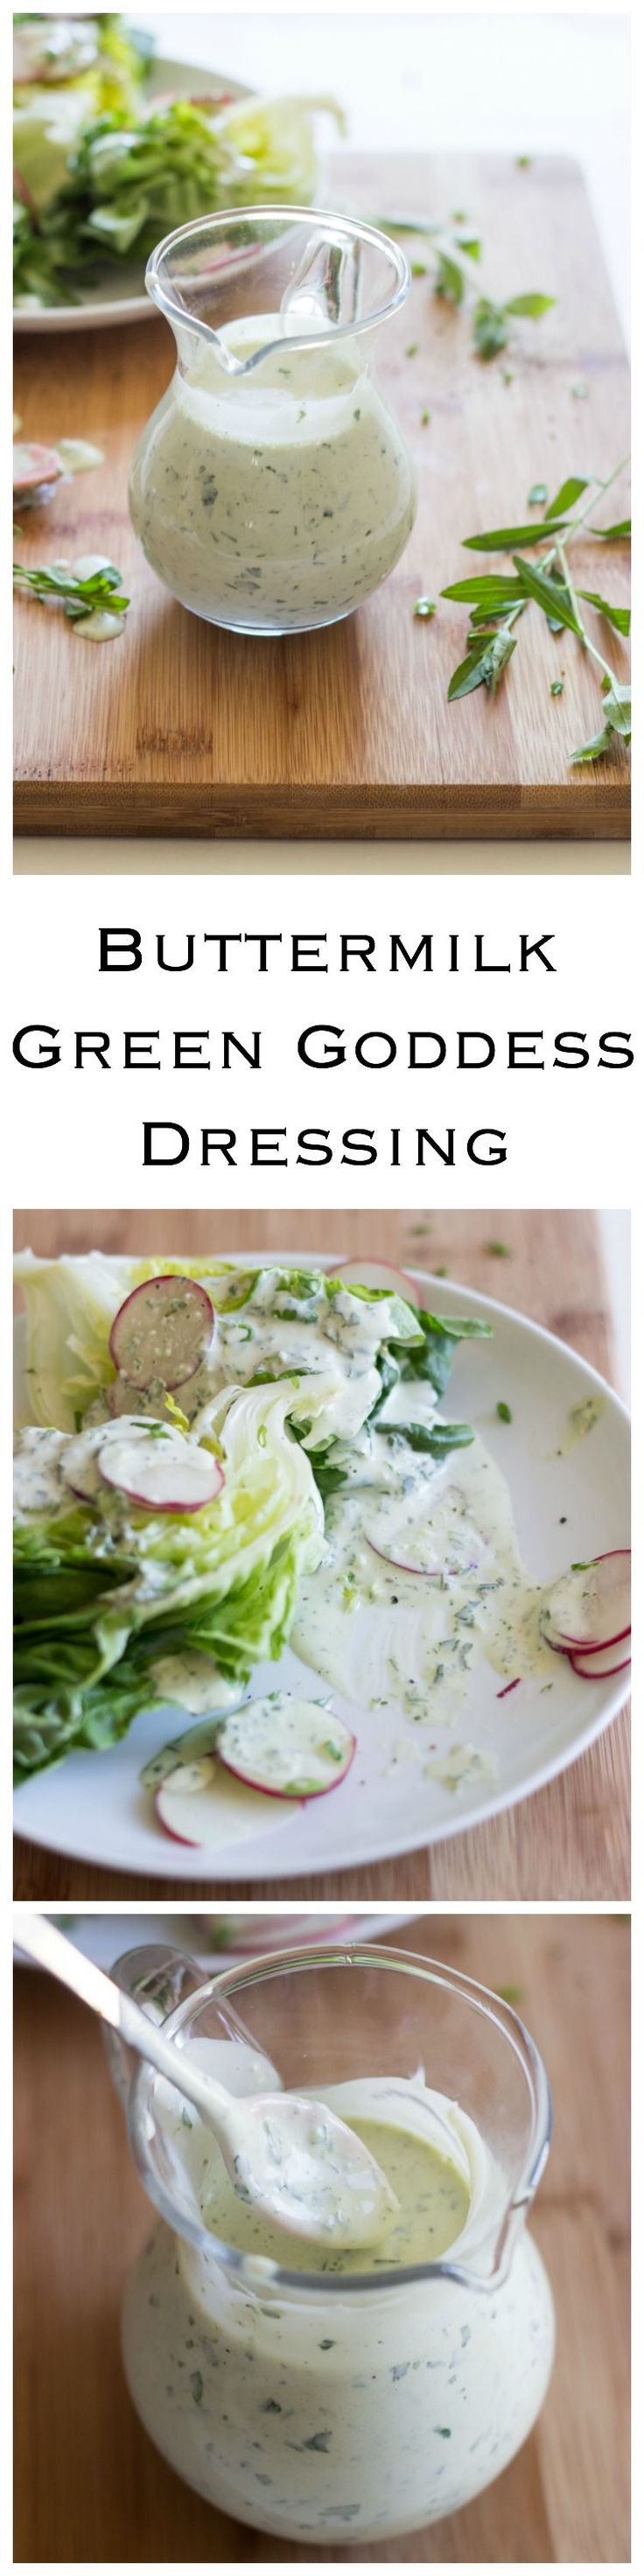 BEST salad dressing ever! You will never go back to anything else. It's so addictive. | littlebroken.com @littlebroken